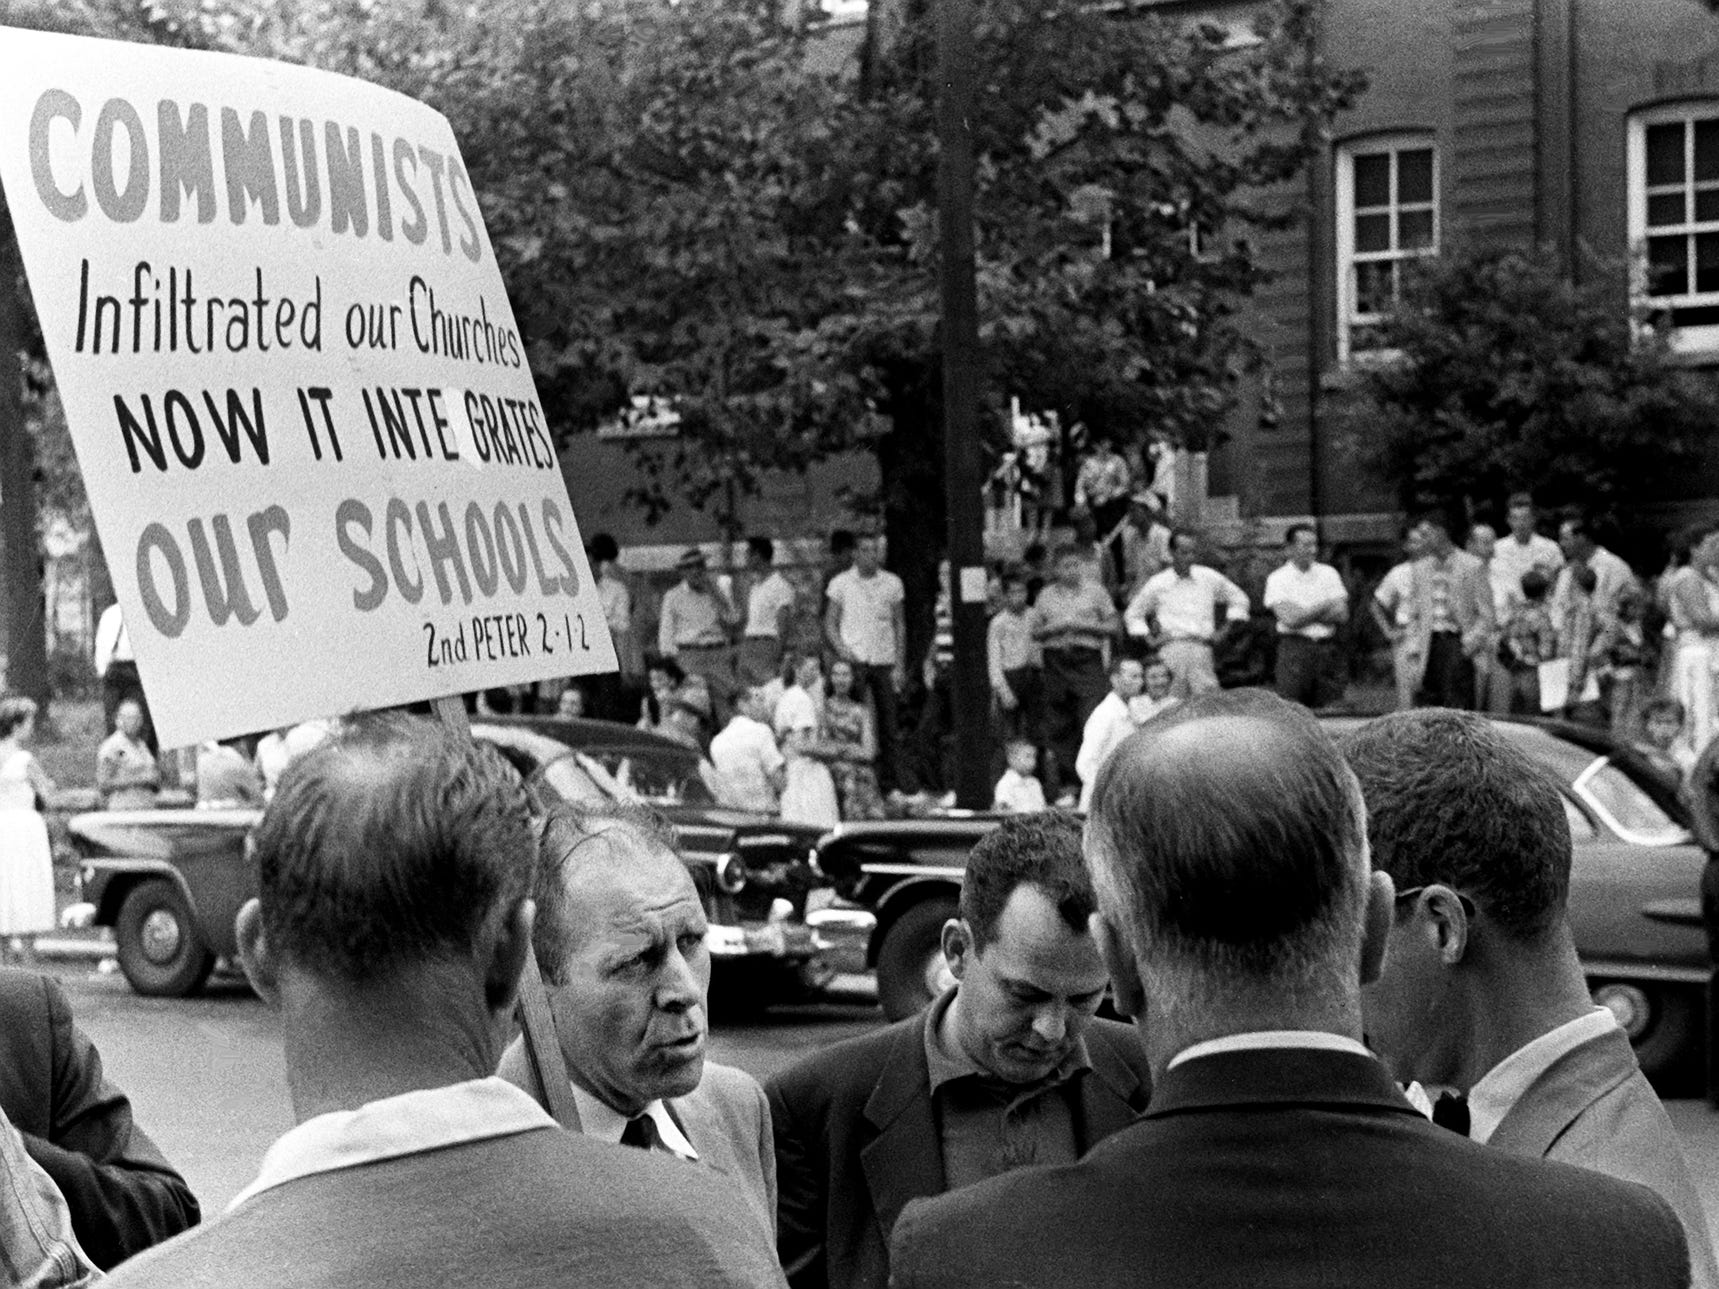 Segregationist the Rev. Fred Stroud, second from left, of Bible Presbyterian Church gathers a crowd to protest integration at Glenn School on Sept. 9, 1957.